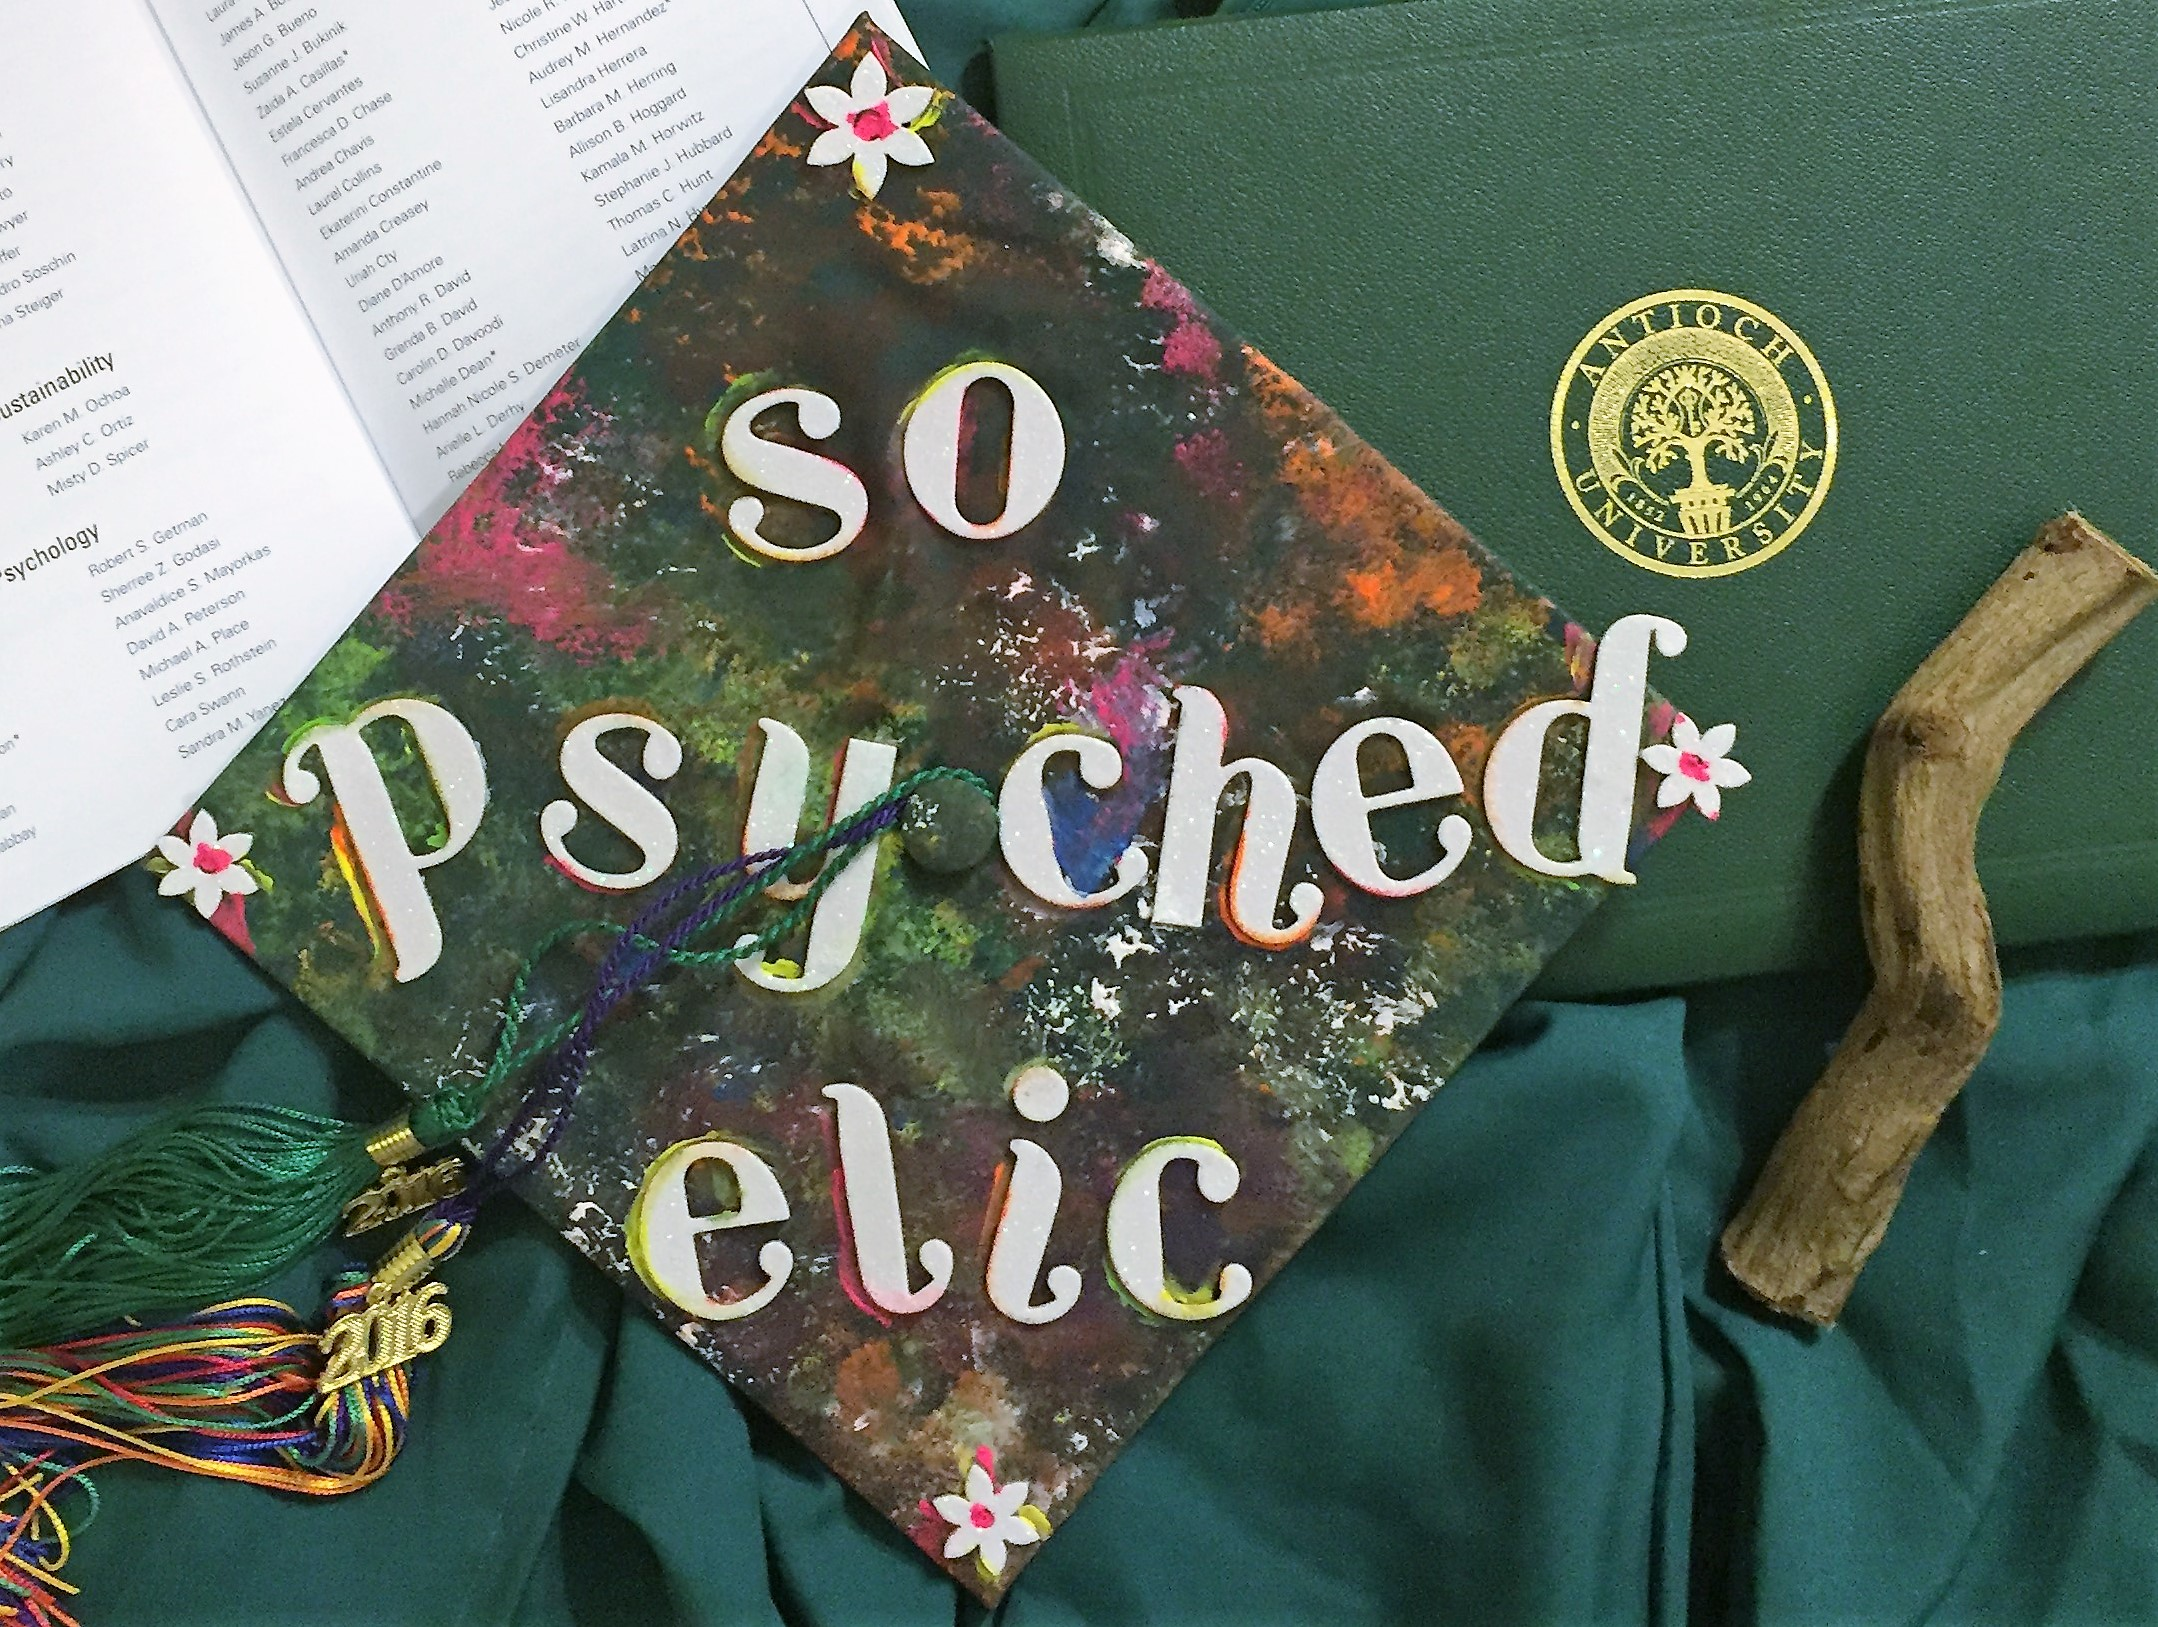 Psychedelic Education